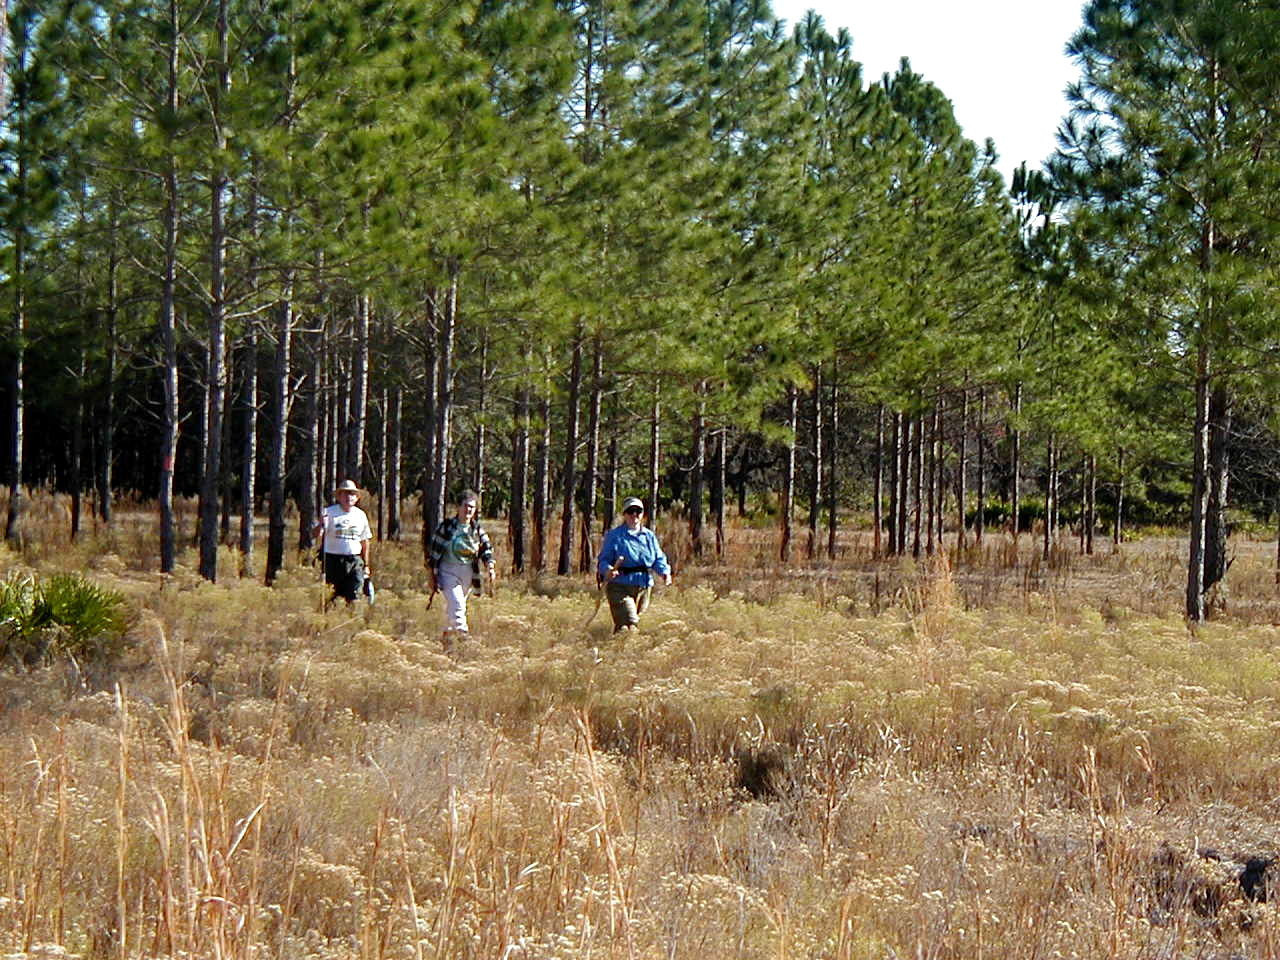 Hikers along the Florida Trail in Green Swamp West  <br /> photo credit: FTA / Deb Blick